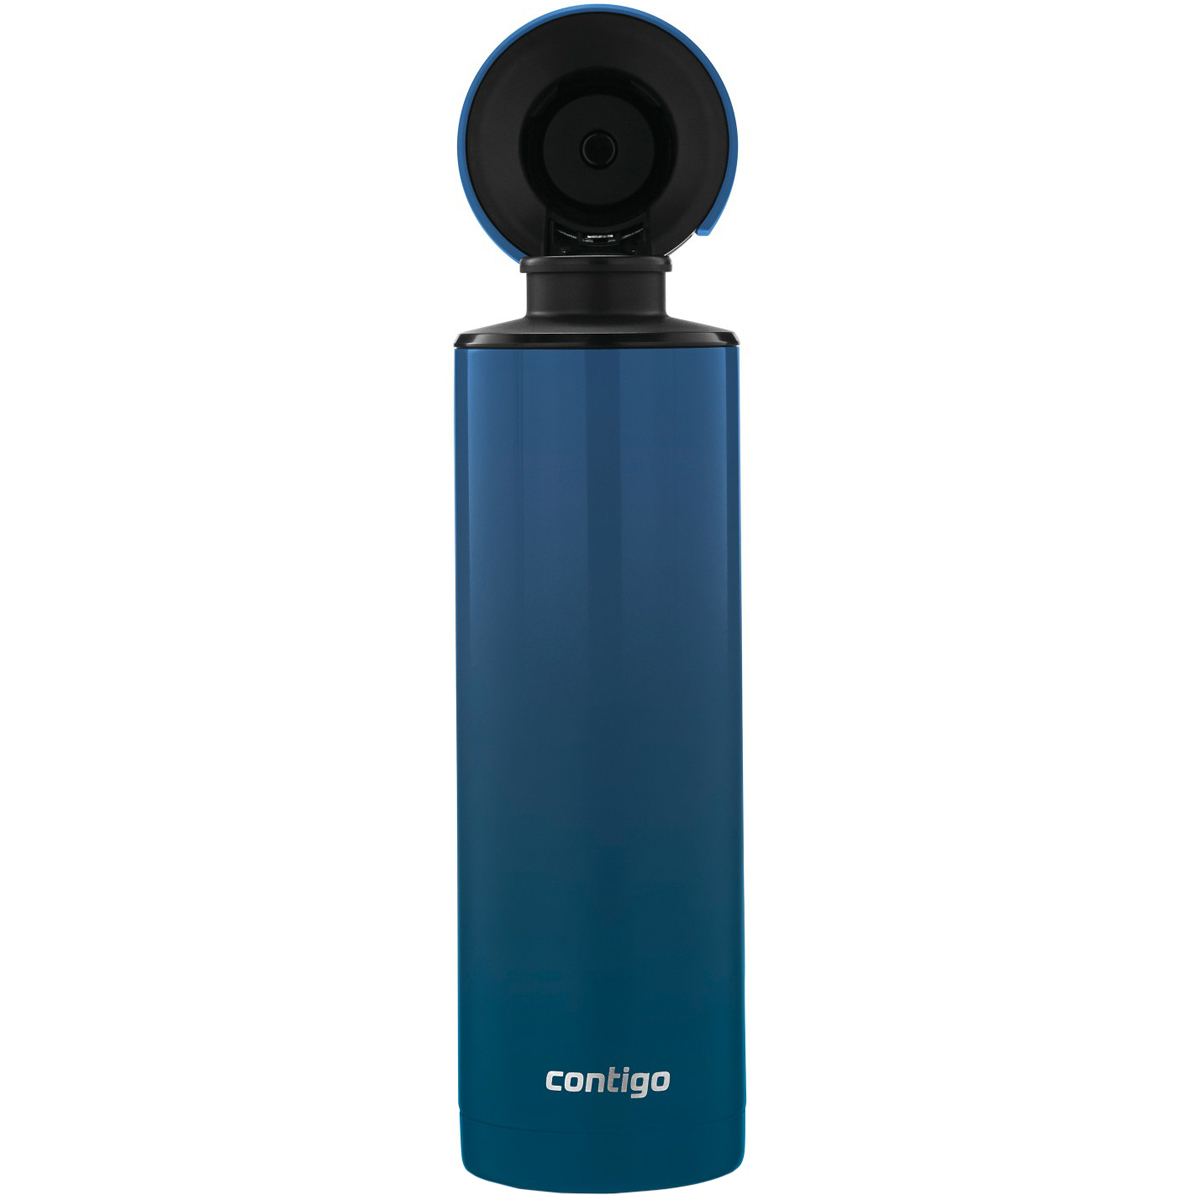 Contigo-24-oz-Evoke-Quick-Twist-Lid-Insulated-Stainless-Steel-Water-Bottle thumbnail 8